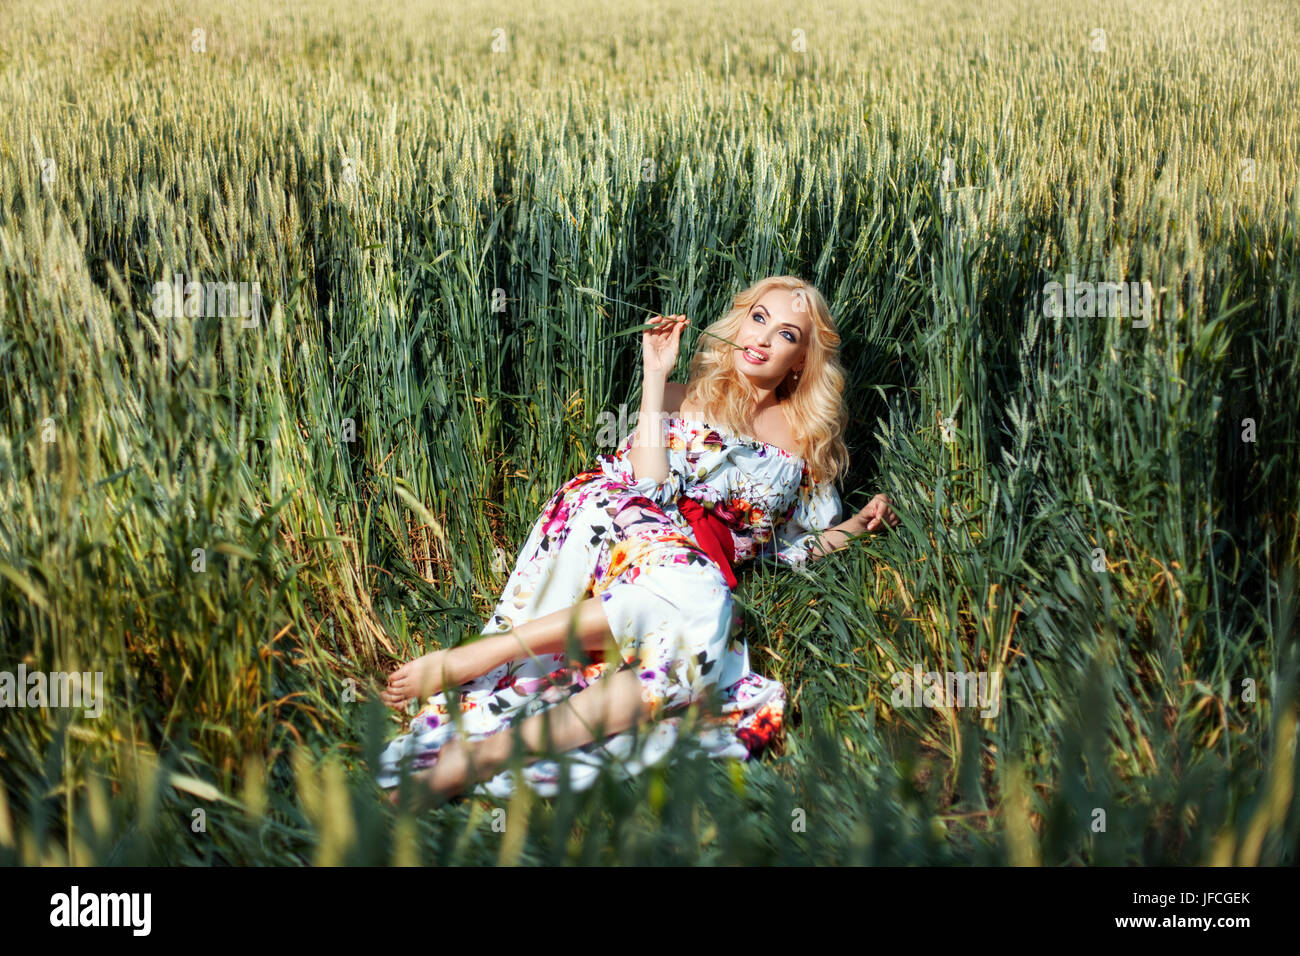 Girl lies on a rumpled grass on the field. She keeps flirting ears of corn mouth. - Stock Image